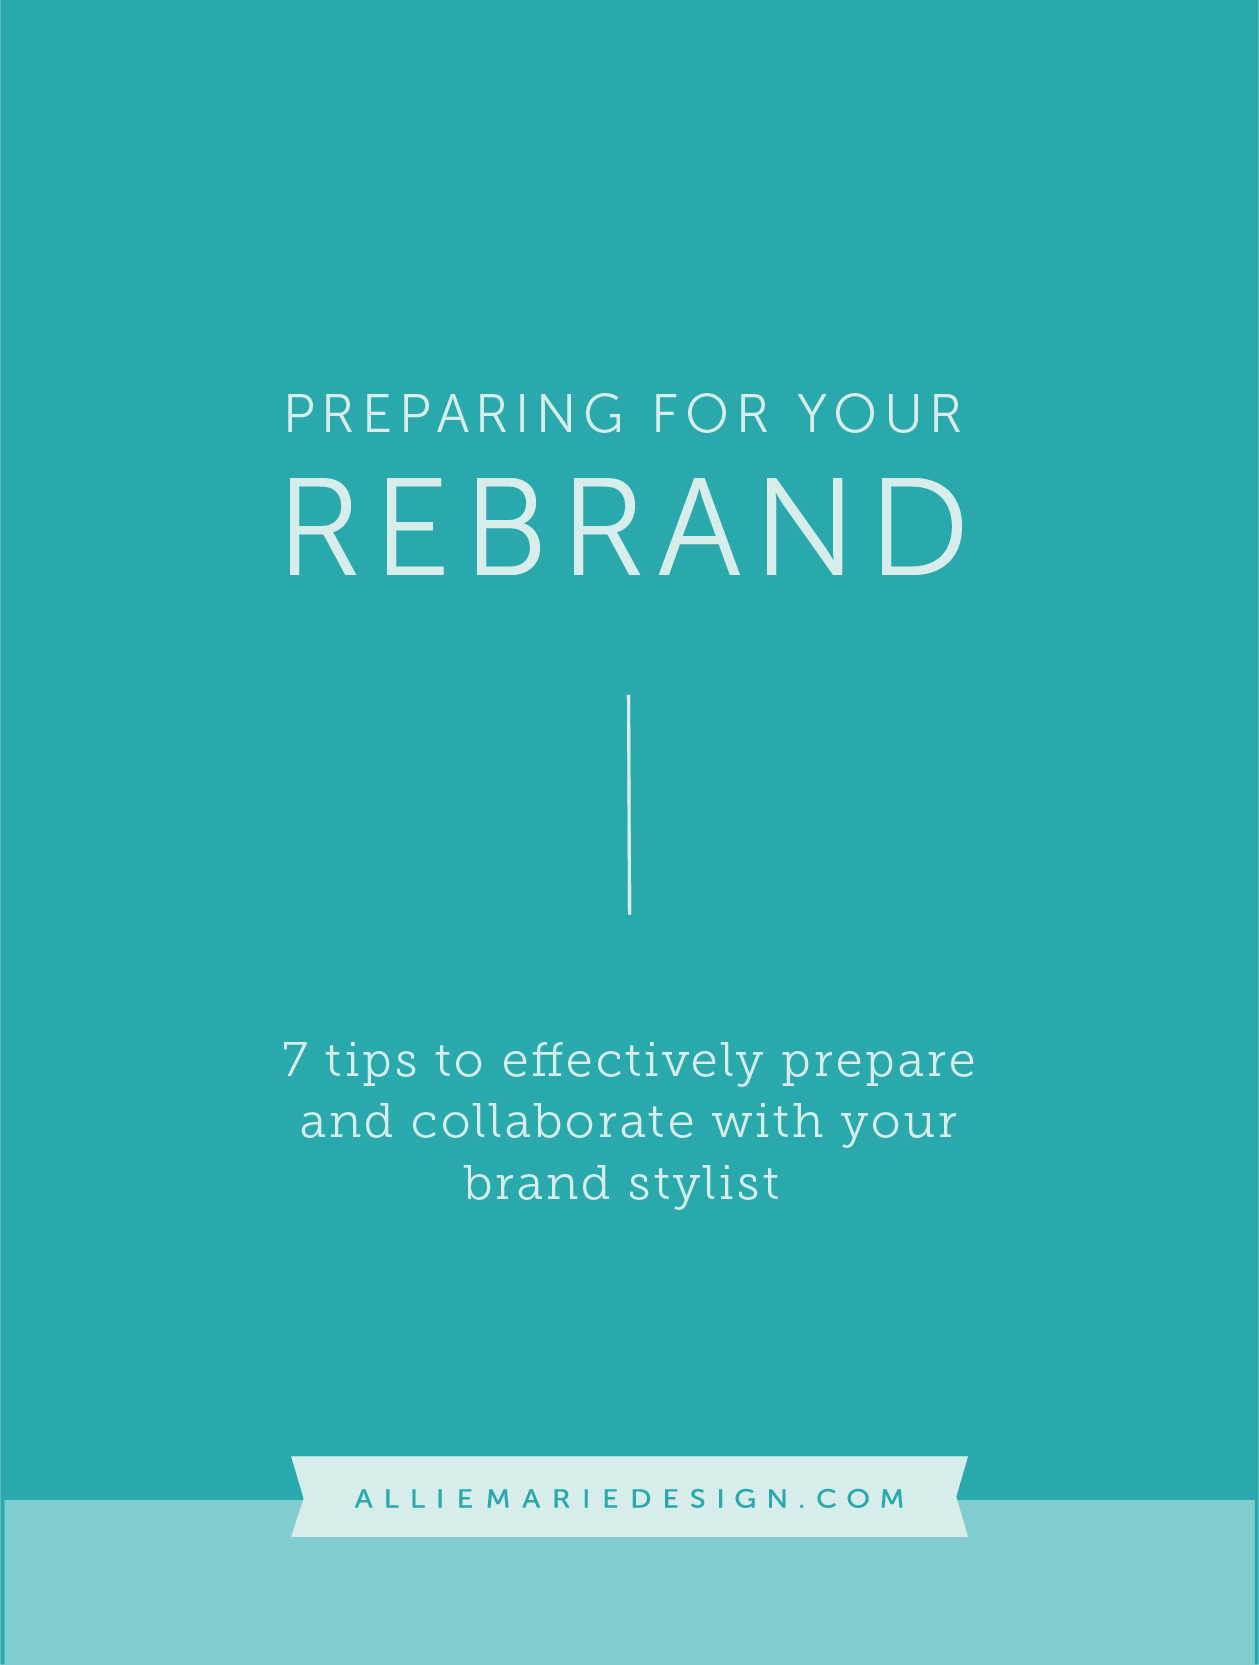 Preparing for your Rebrand: 7 tips to effectively prepare and collaborate with your brand stylist